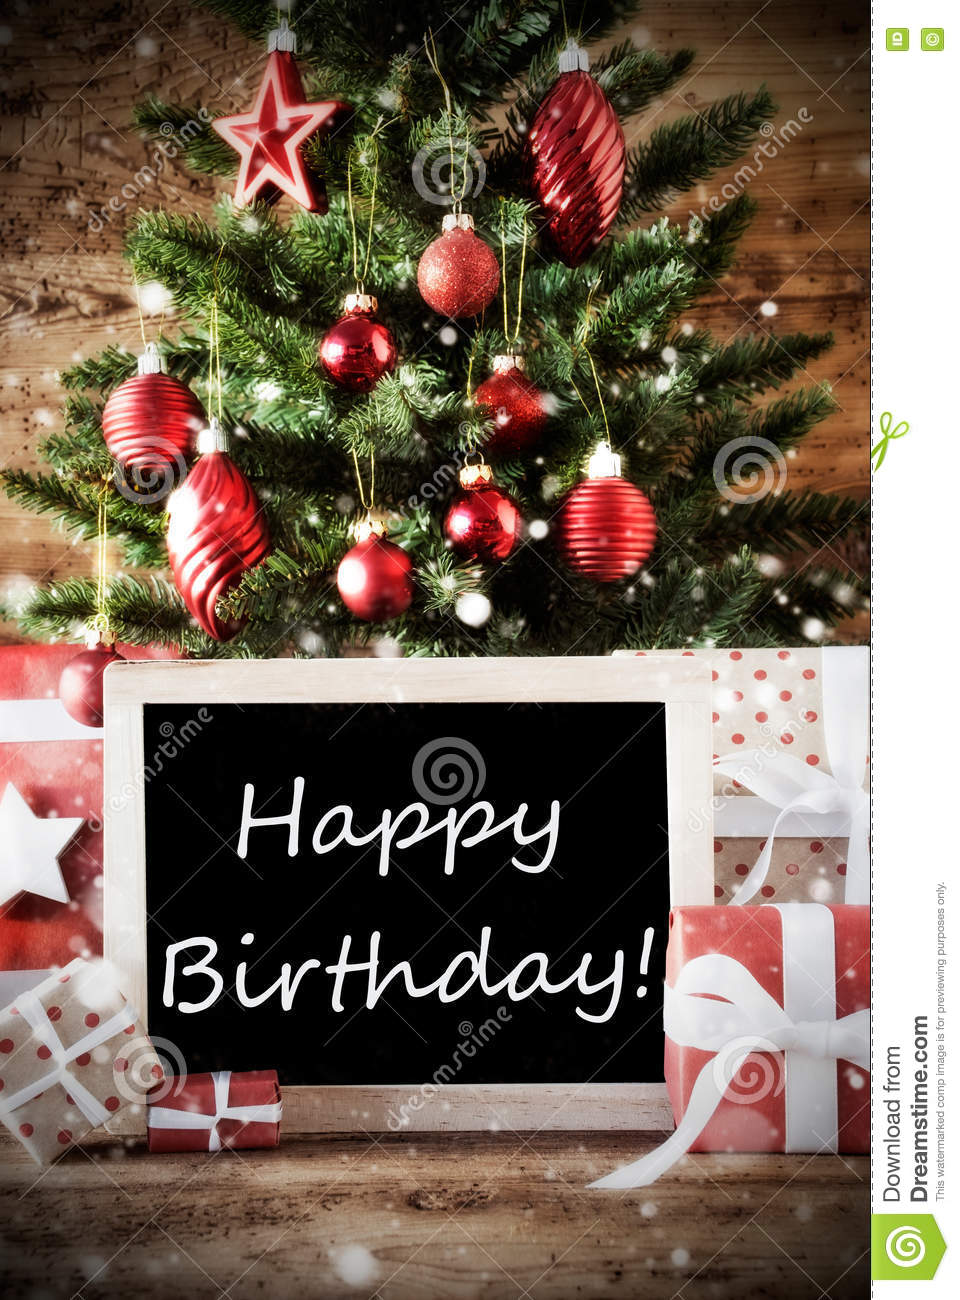 Christmas Birthday Image.Christmas Tree With Happy Birthday Stock Photo Image Of